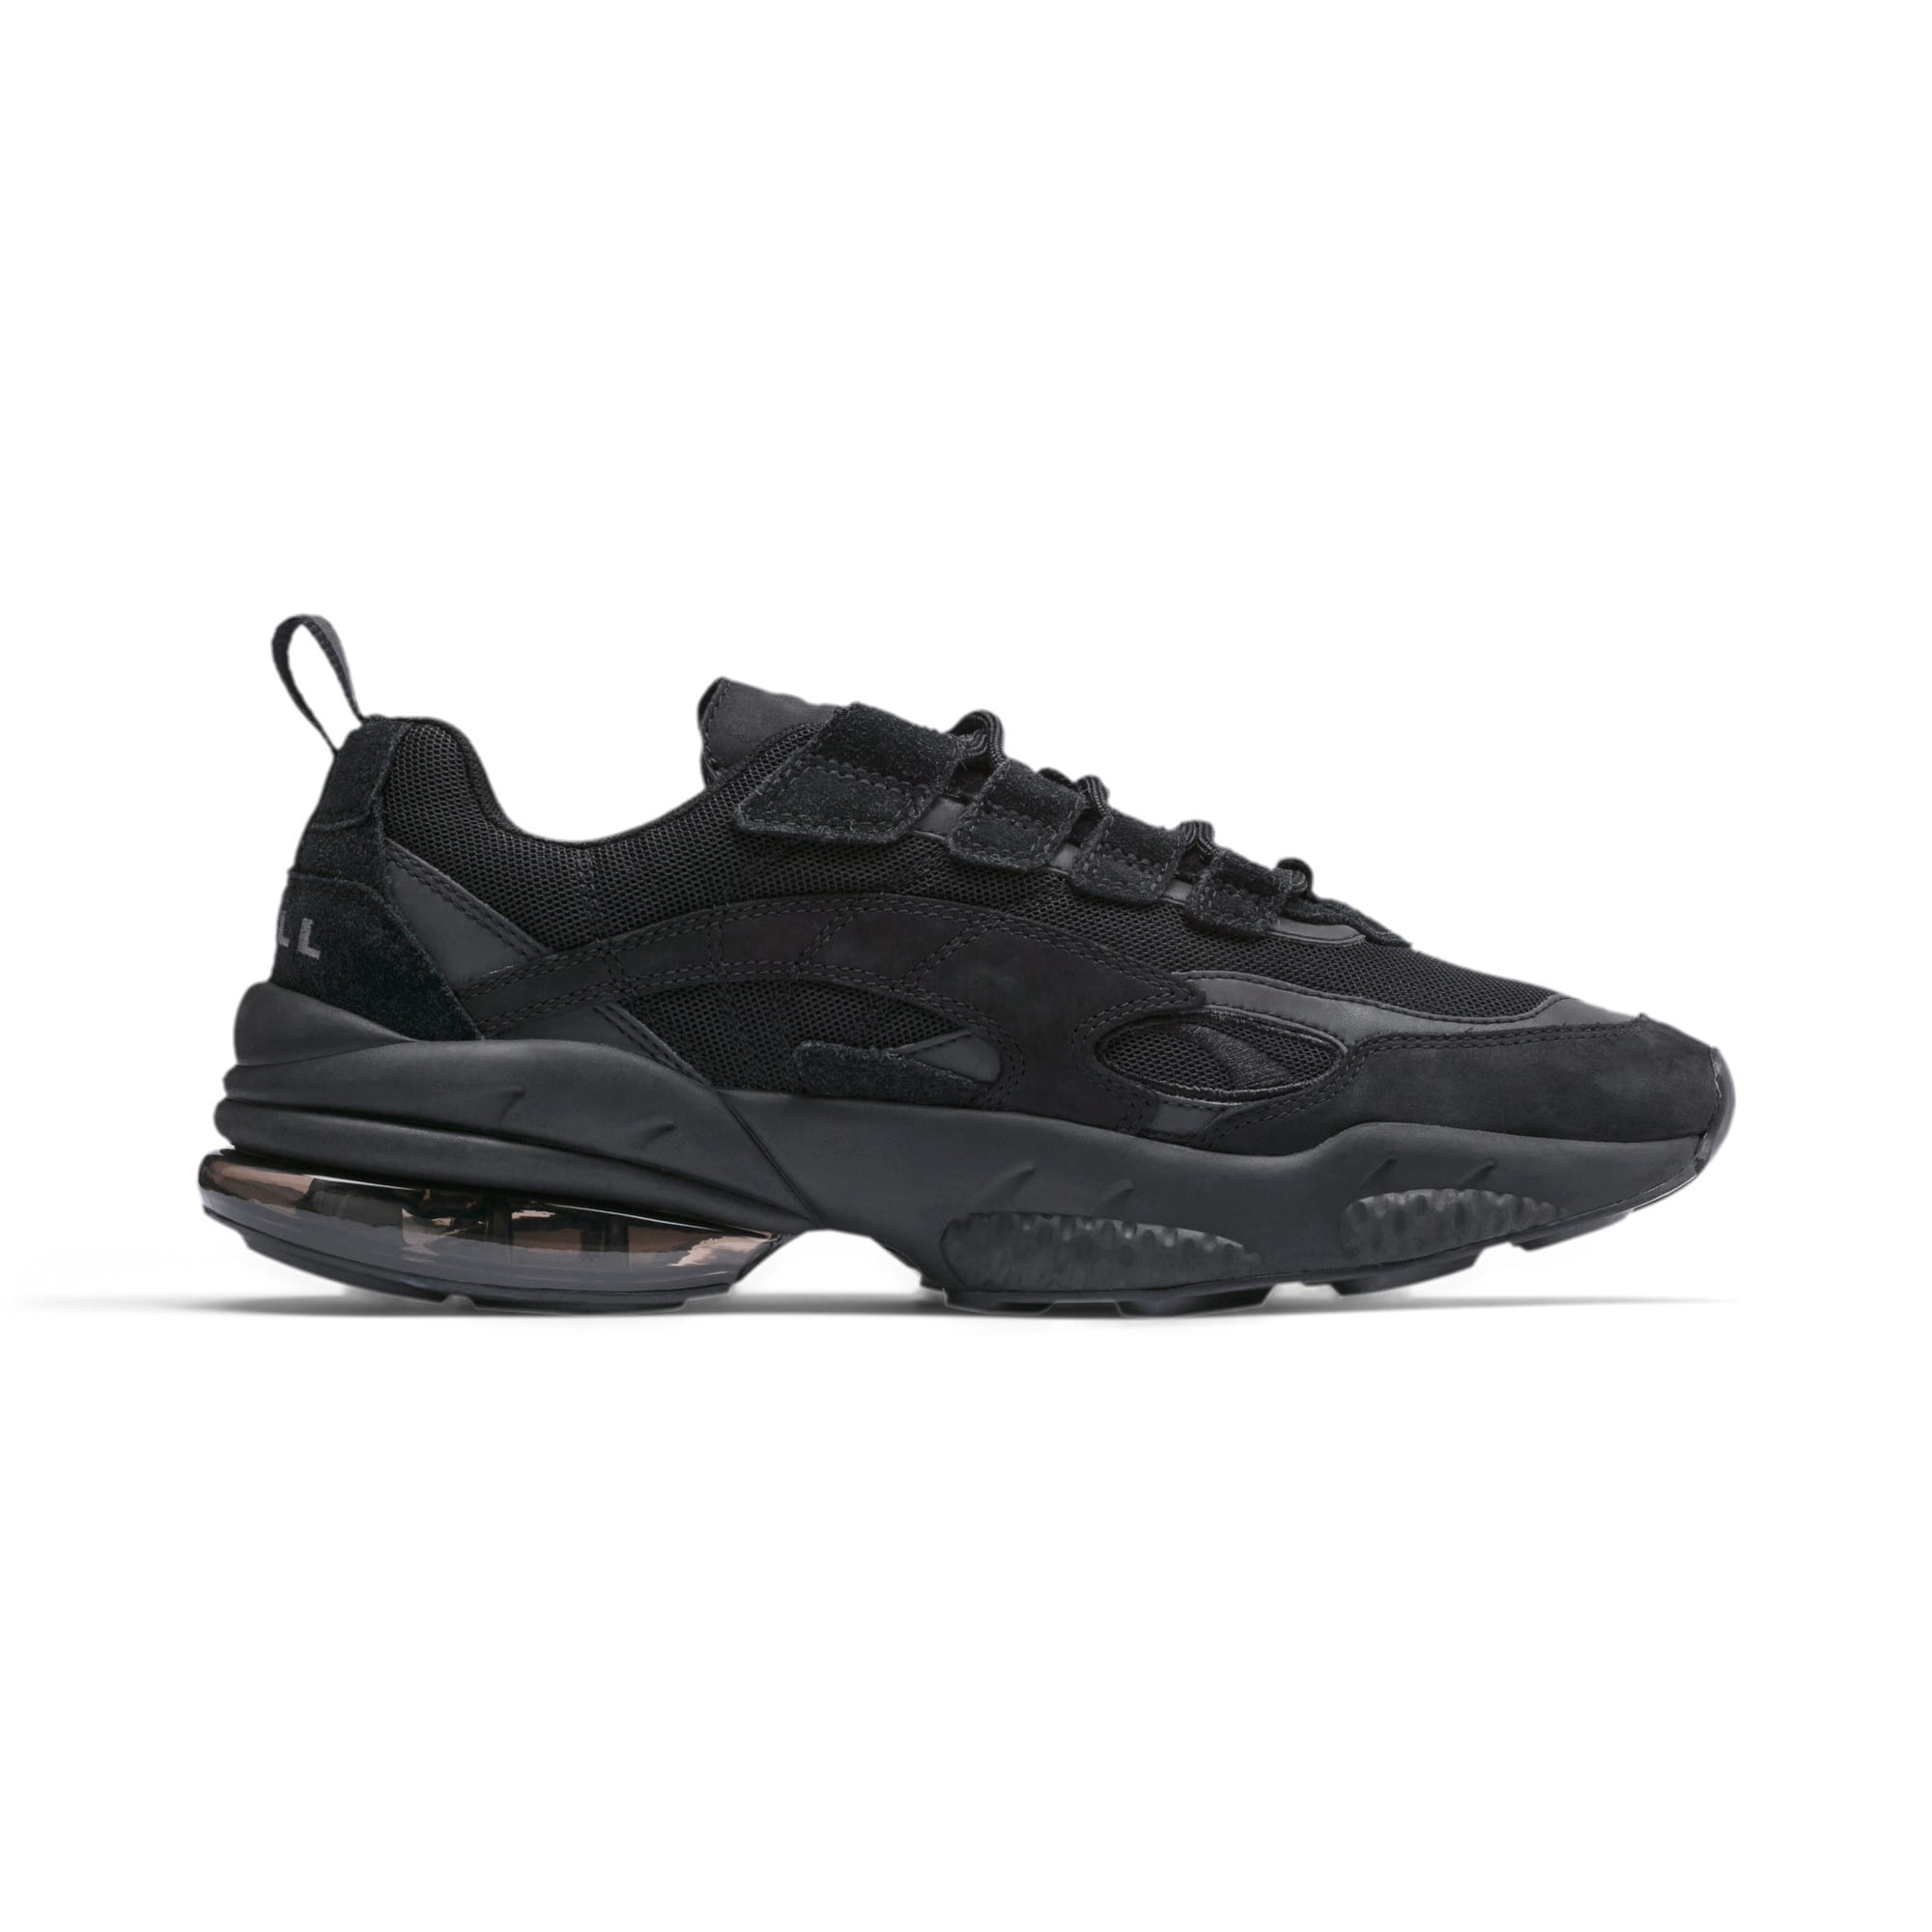 Thumbnail 5 of Scarpe da ginnastica CELL Venom Blackout, Puma Black-Puma Black, medium